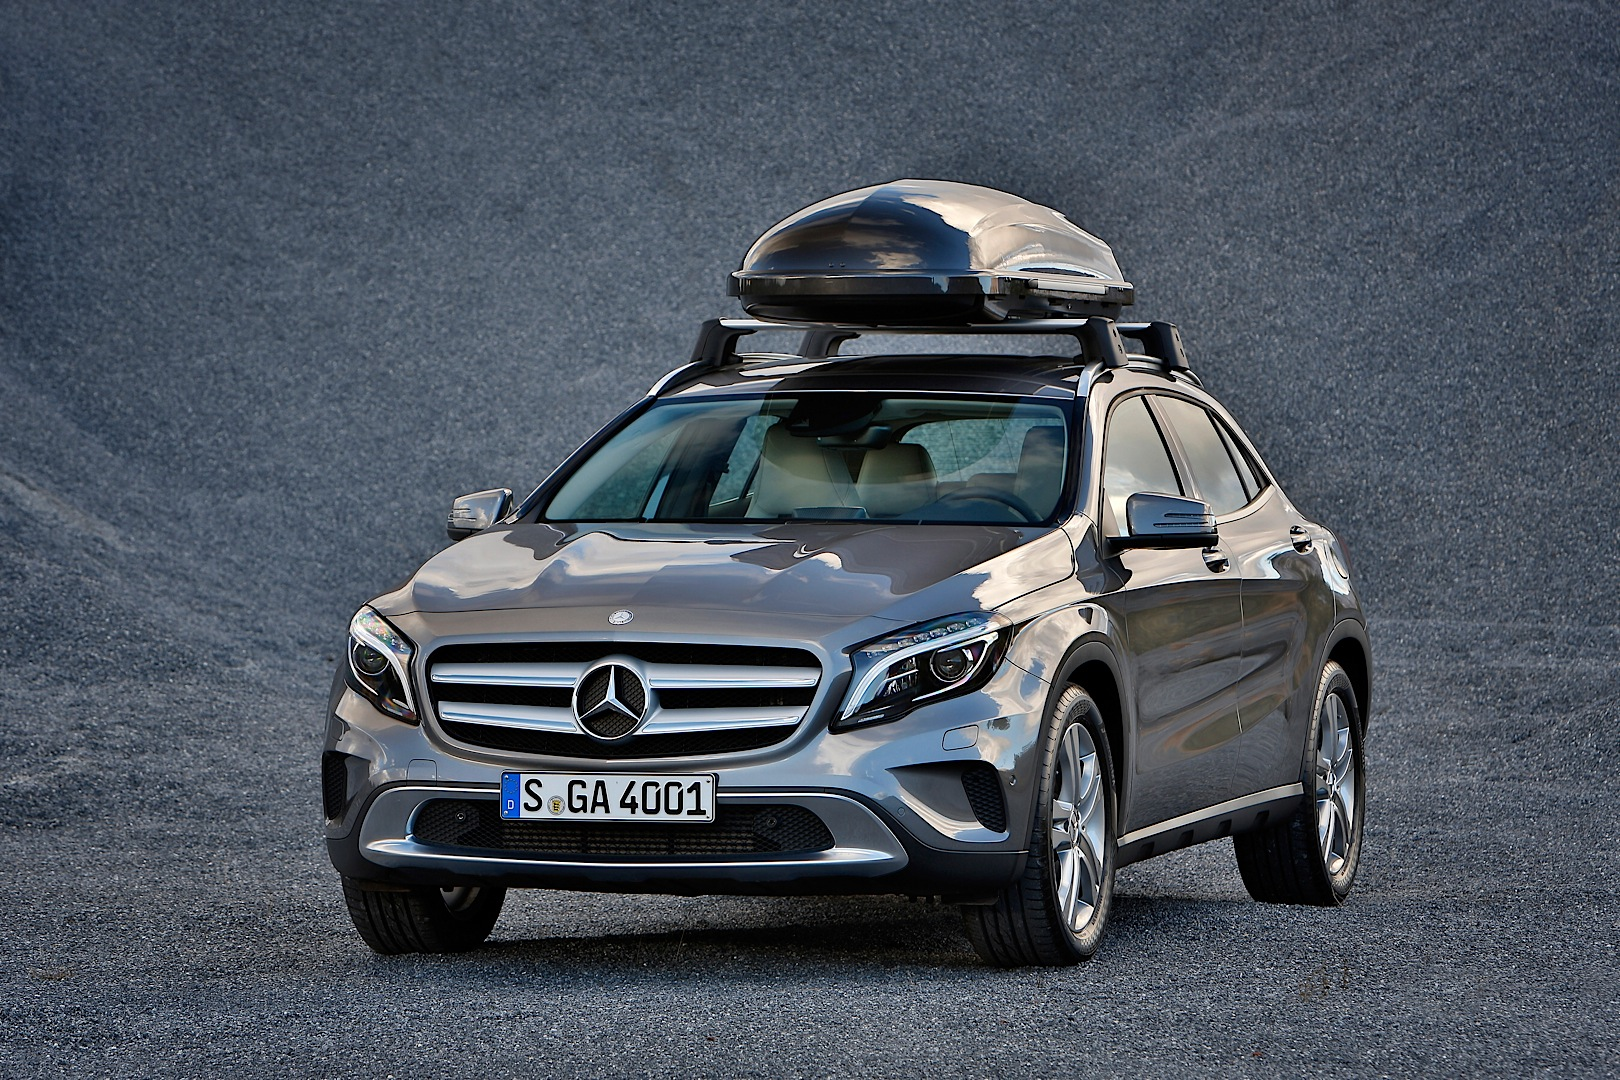 Mercedes Benz Gla Gets New Accessories Autoevolution